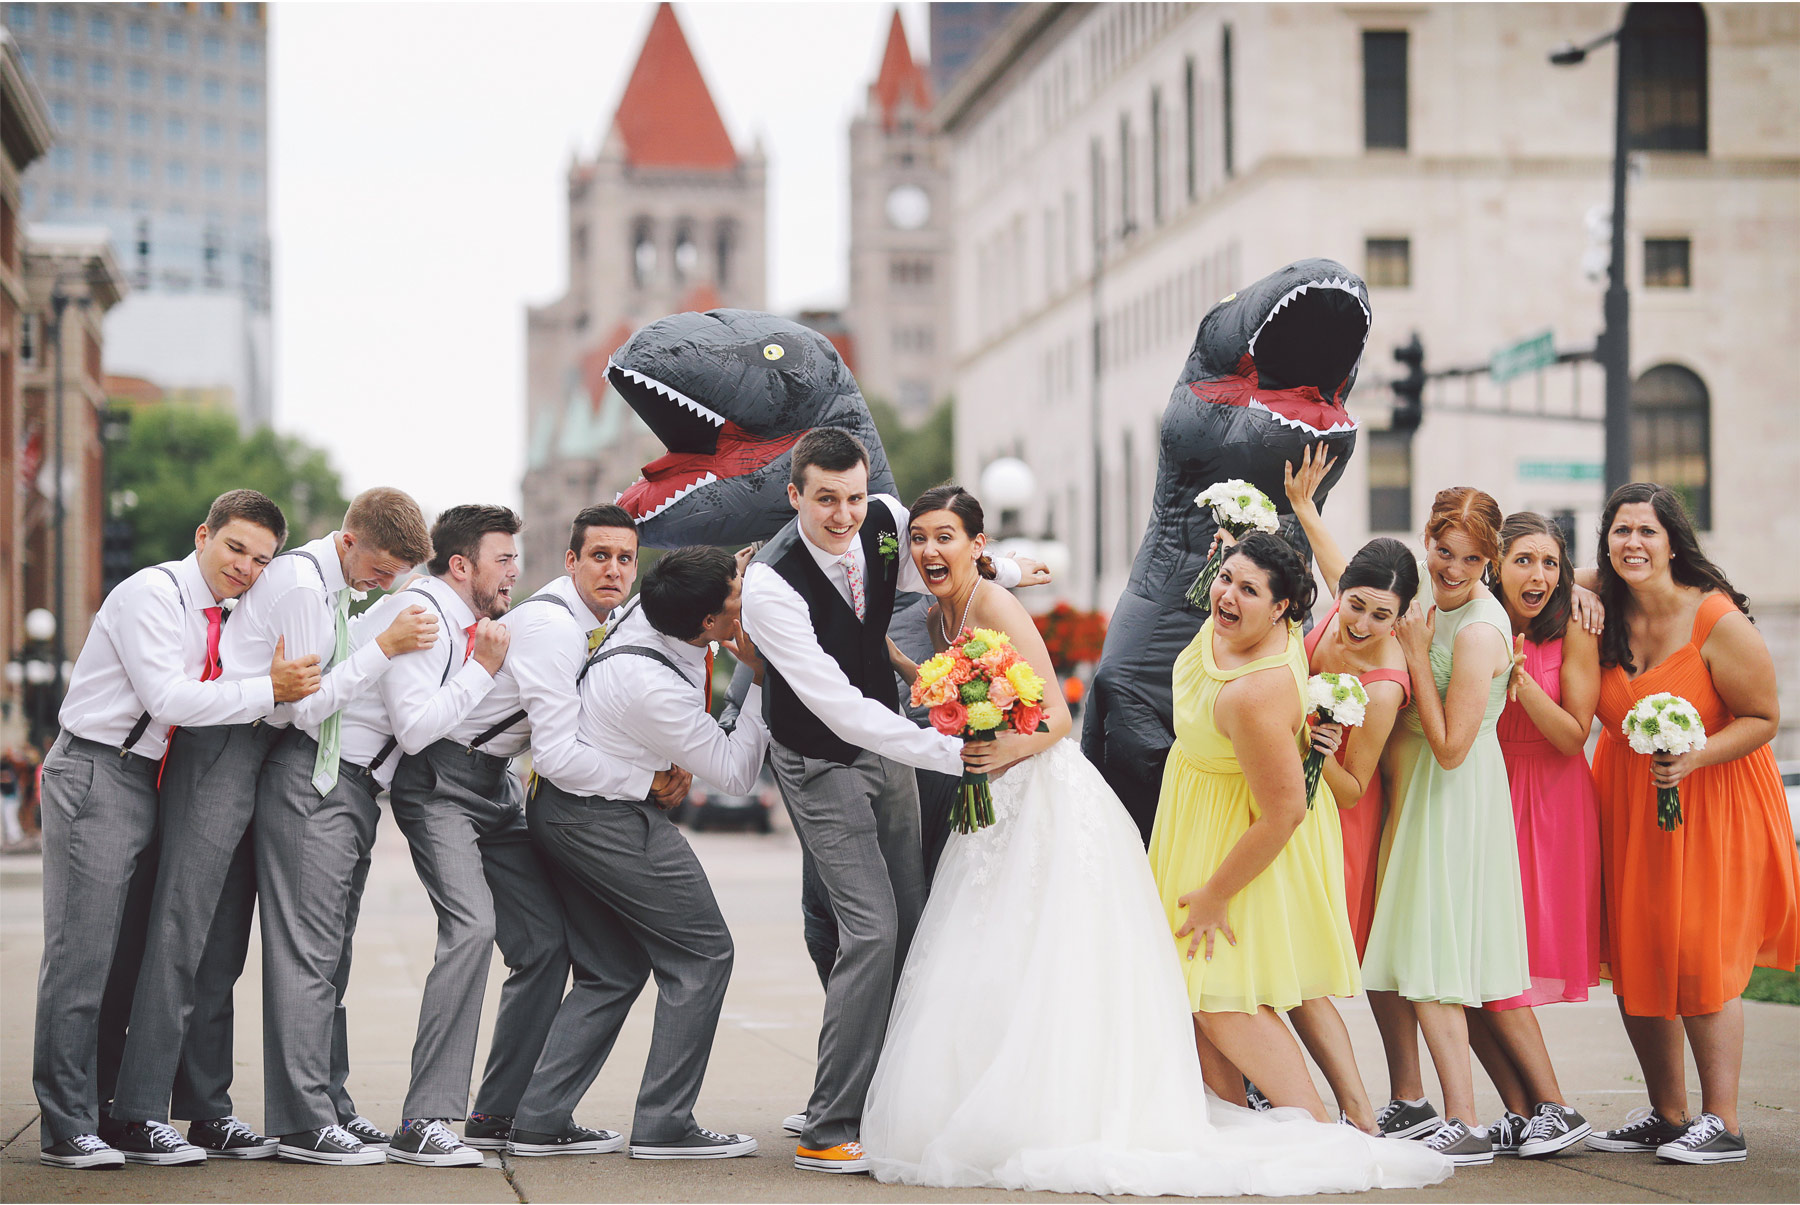 11-St-Paul-Minnesota-Wedding-Photography-by-Vick-Photography-Science-Museum-Dinosaur-Wedding-Group-Wedding-Party-Dinosaur-Chase-Stephanie-and-Scott.jpg